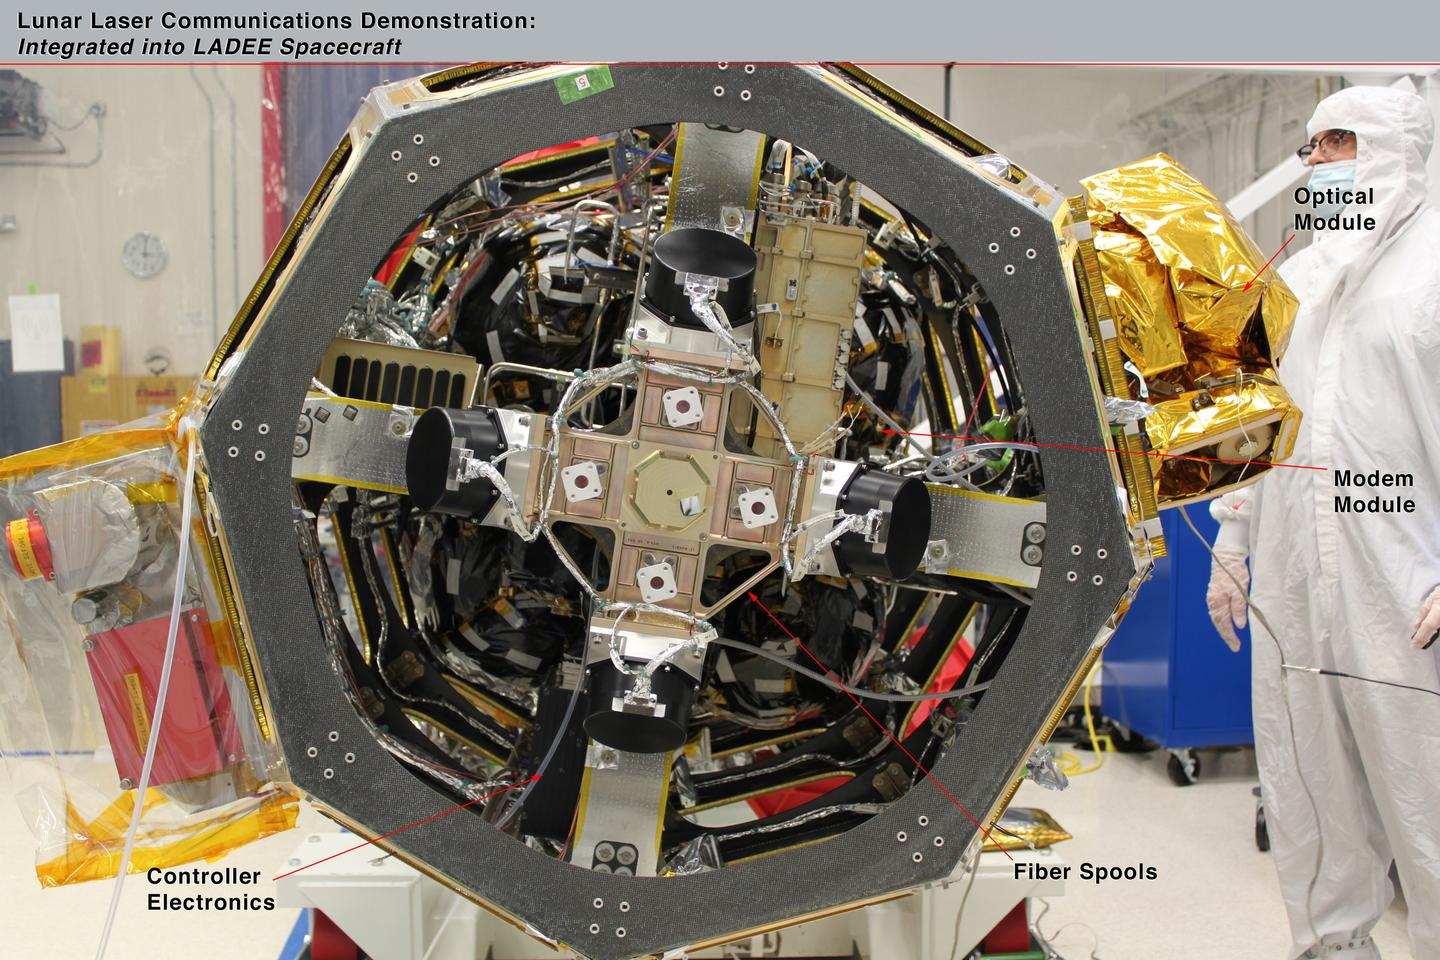 Lunar Laser Communication Demonstration's (LLCD) 3 modules integrated with the LADEE spacecraft (Image: NASA)